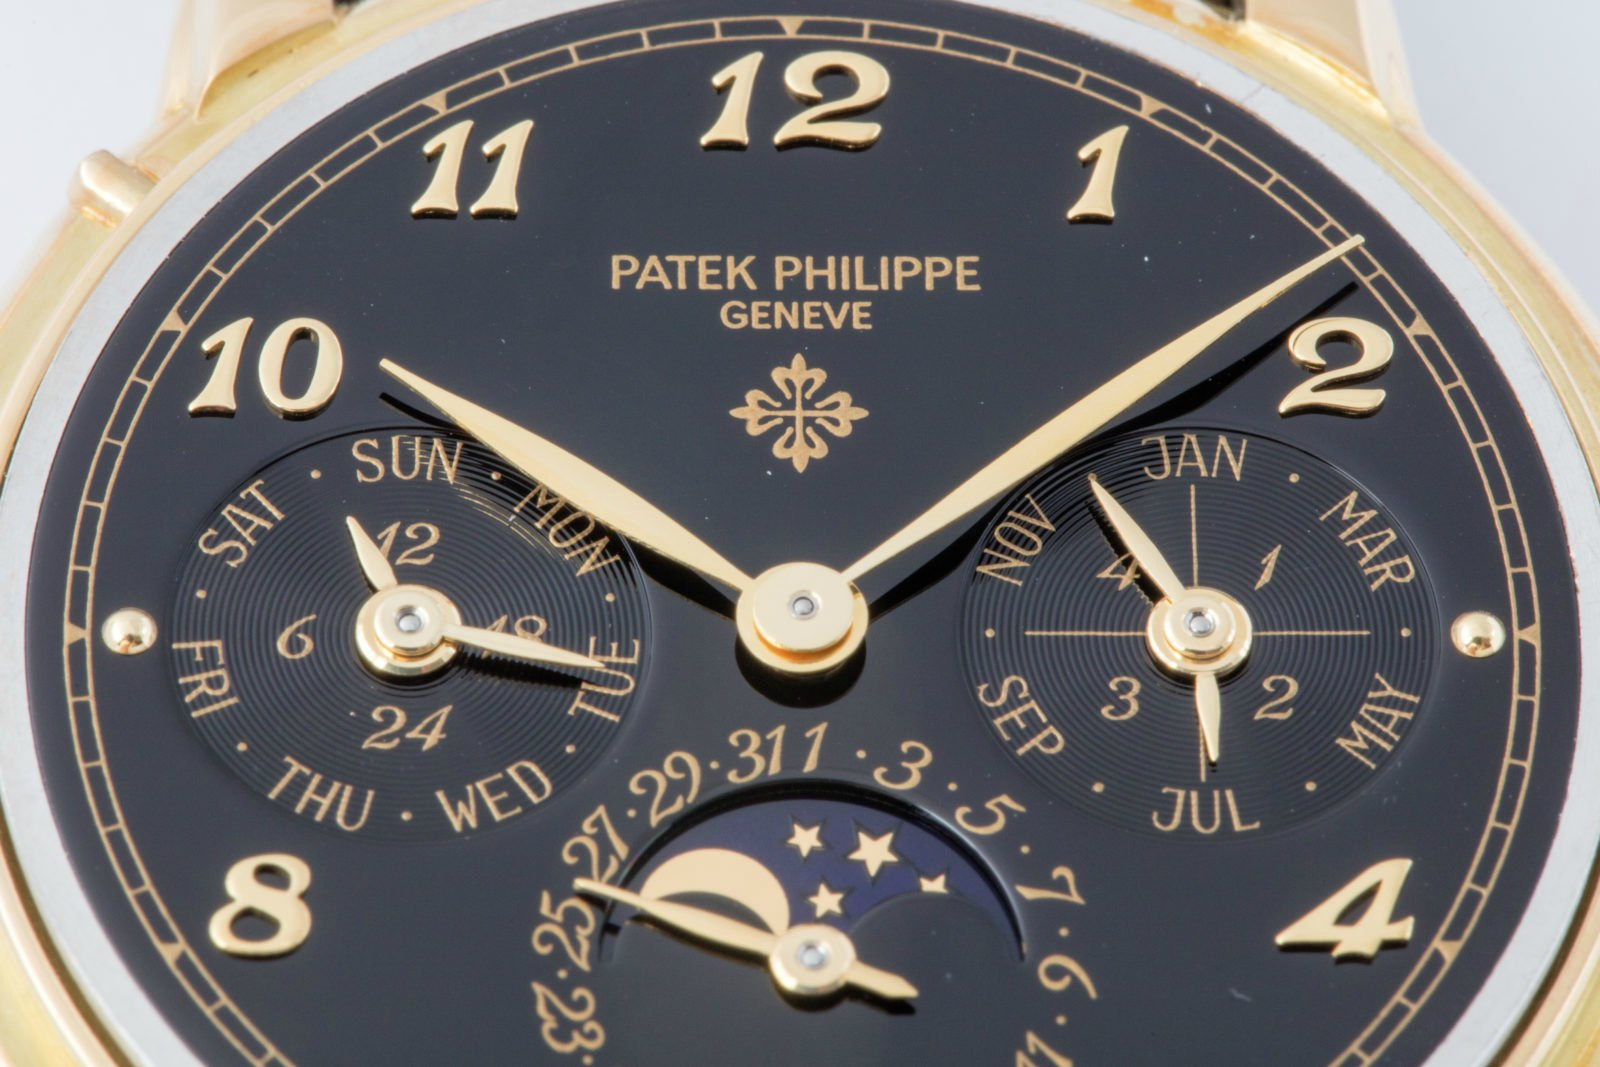 5 of The Rarest Vintage Watches Ever Made